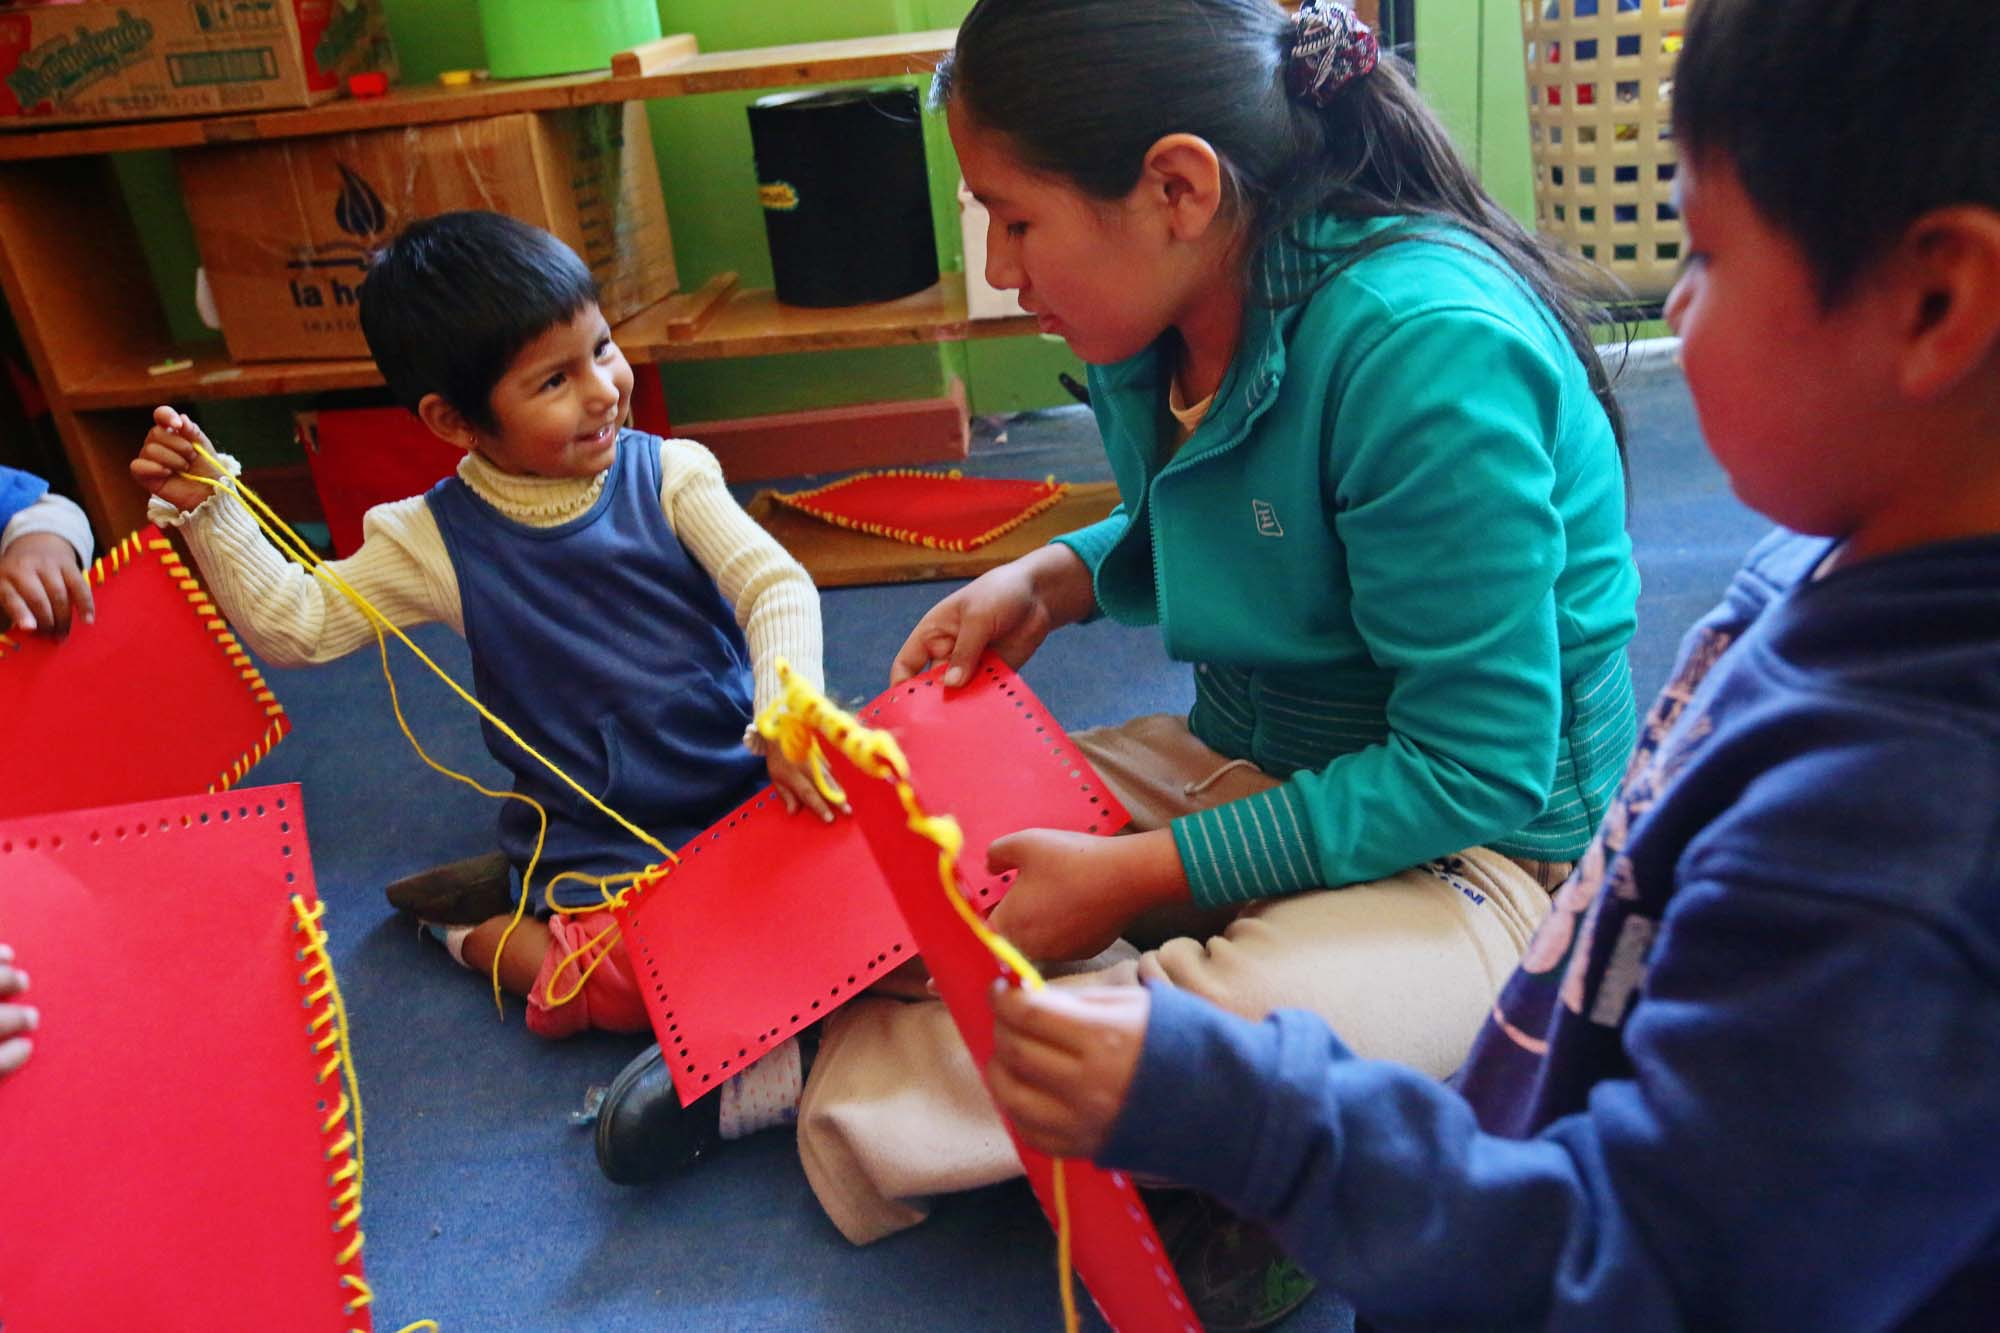 A smiling toddler threads fabric squares with an older student